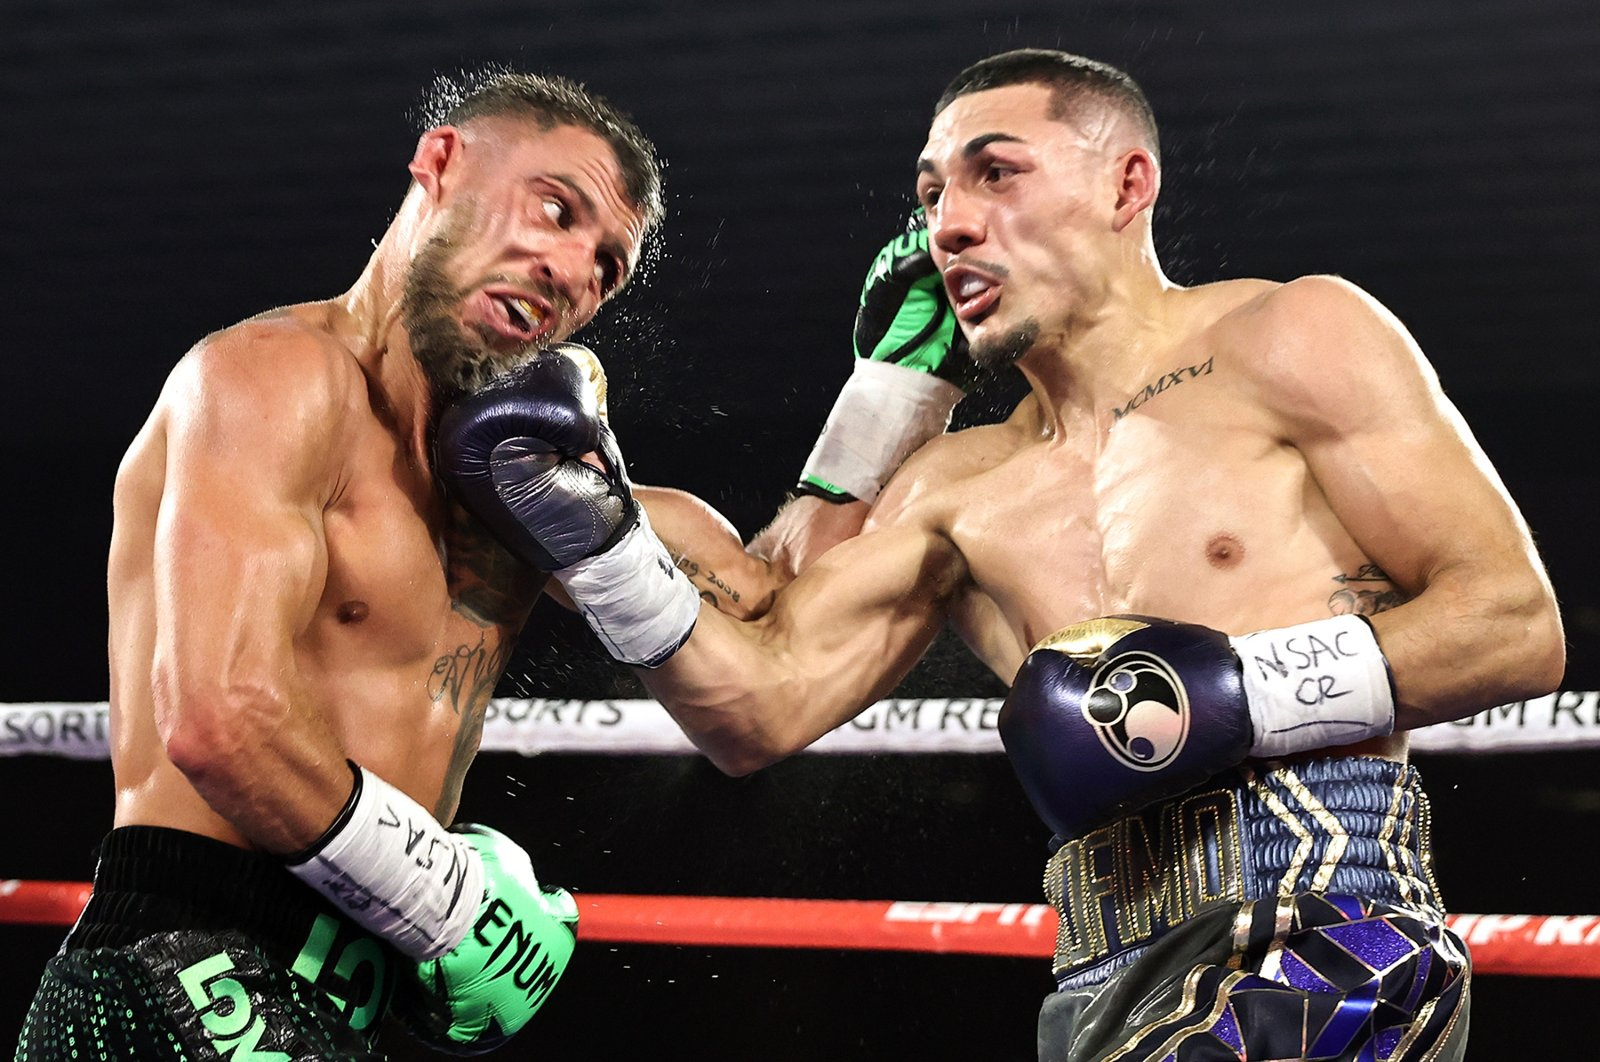 Vasiliy Lomachenko (L) fights Teofimo Lopez in their Lightweight World Title bout in Las Vegas, Nevada, U.S., Oct. 17, 2020. (Getty Images)